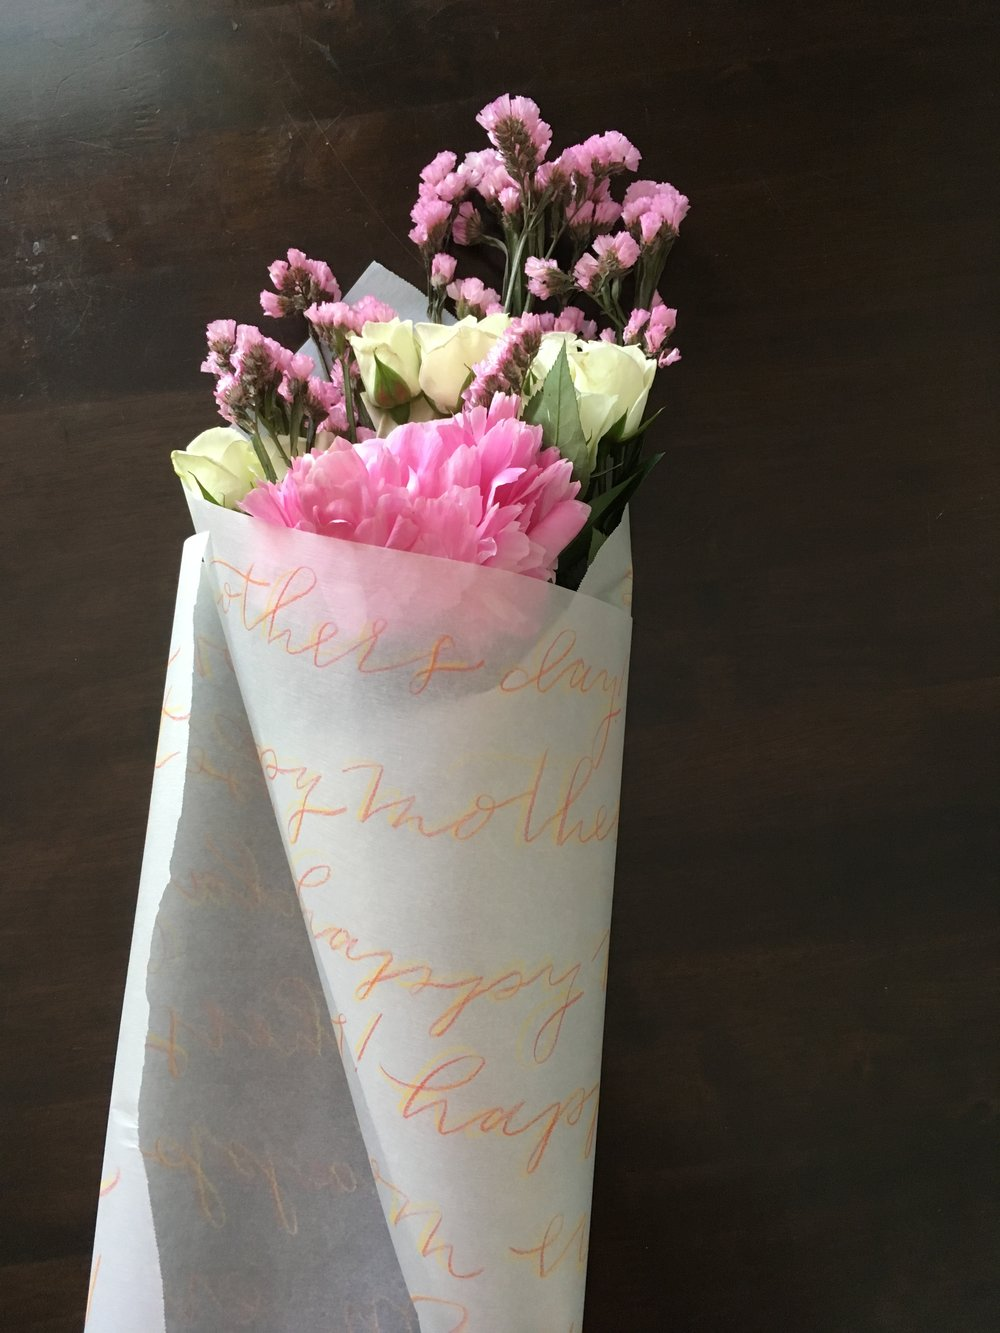 Step 8. - Roll the floral paper around the bouquet. Start at the lower right corner and tuck it over the stems and continue rolling the bouquet until you've reached the other side of the paper.